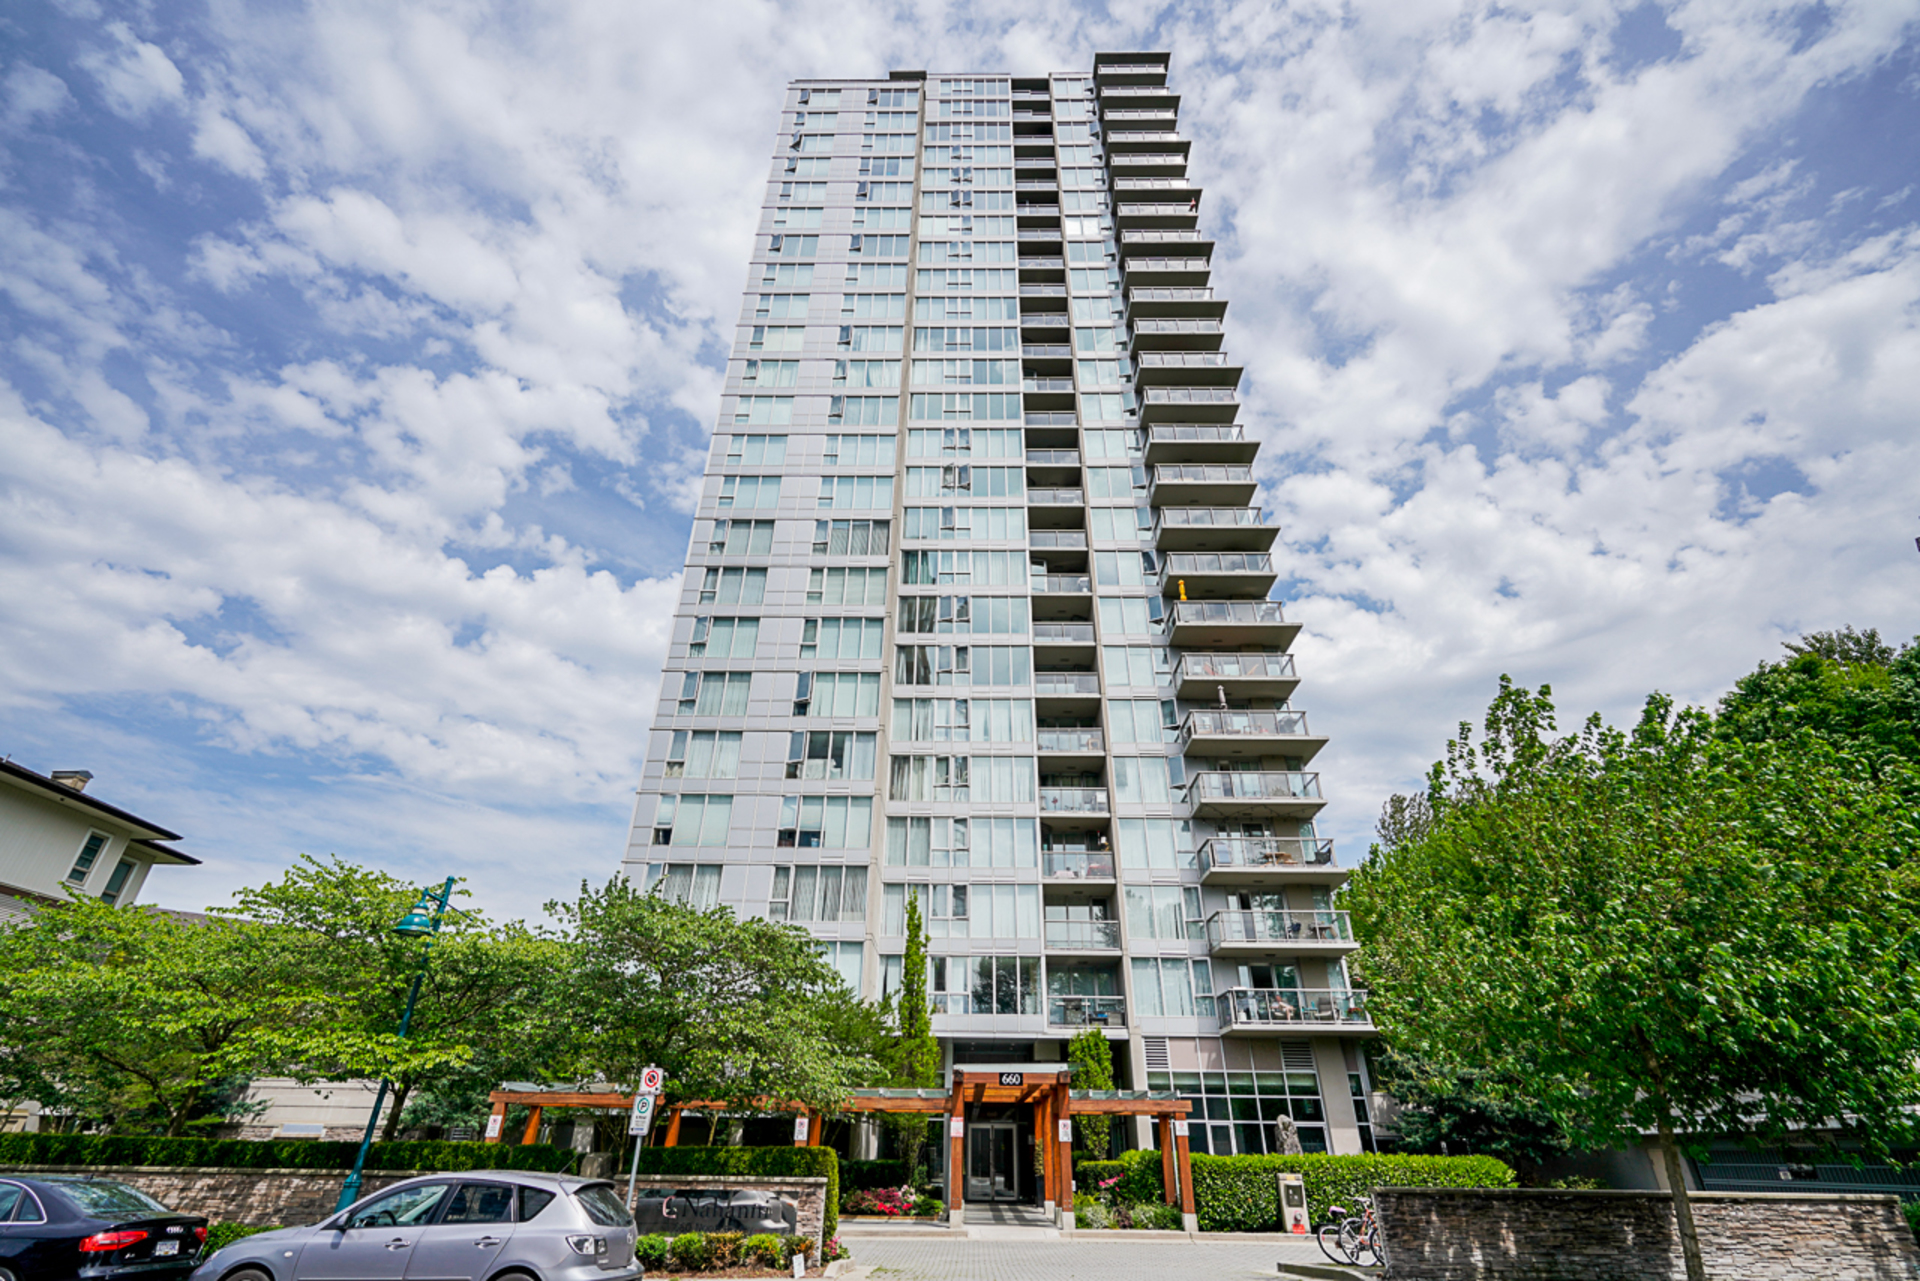 unit-2108-660-nootka-way-port-moody-4 of 2108 - 660 Nootka Way, Port Moody Centre, Port Moody